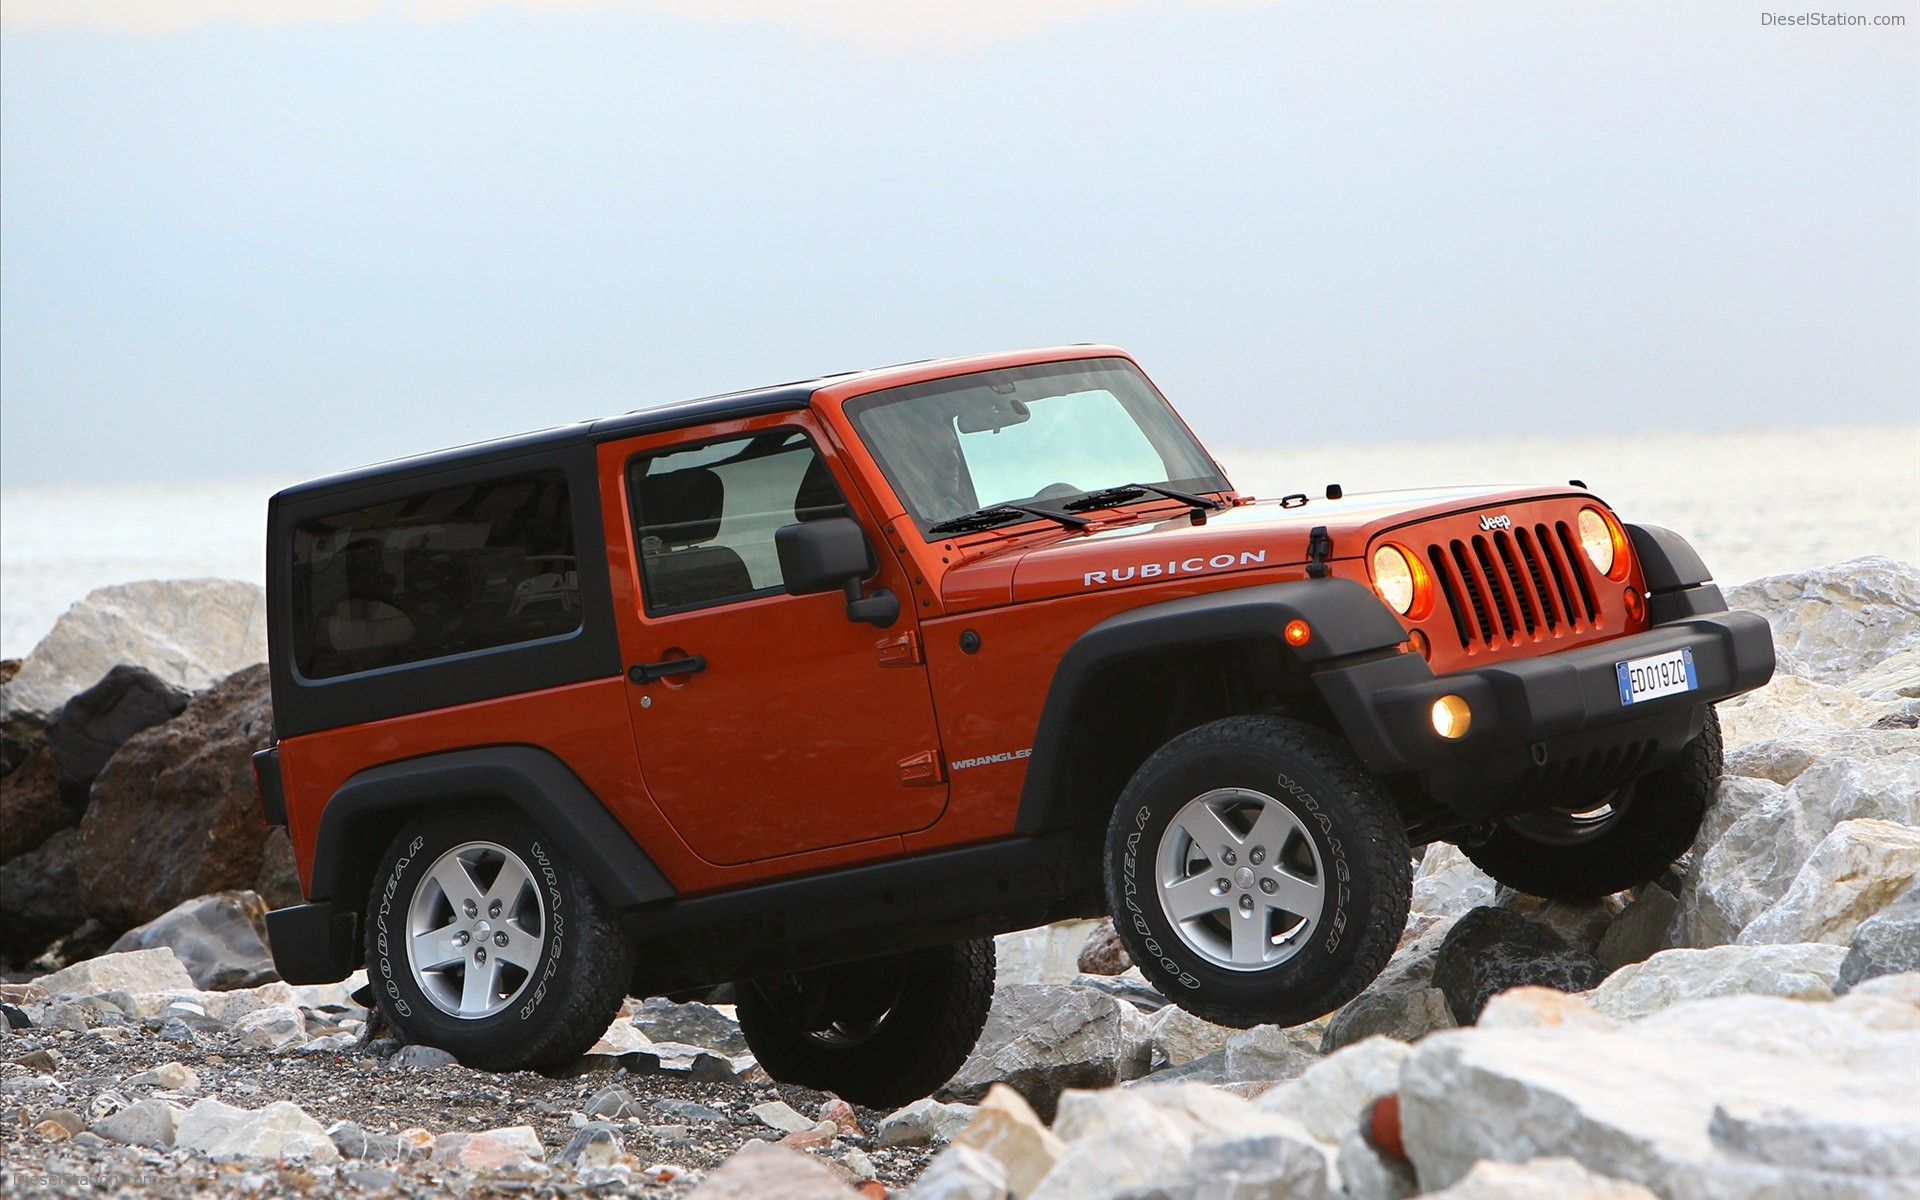 Jeep-Rubicon-HD-Background-Wallpaper